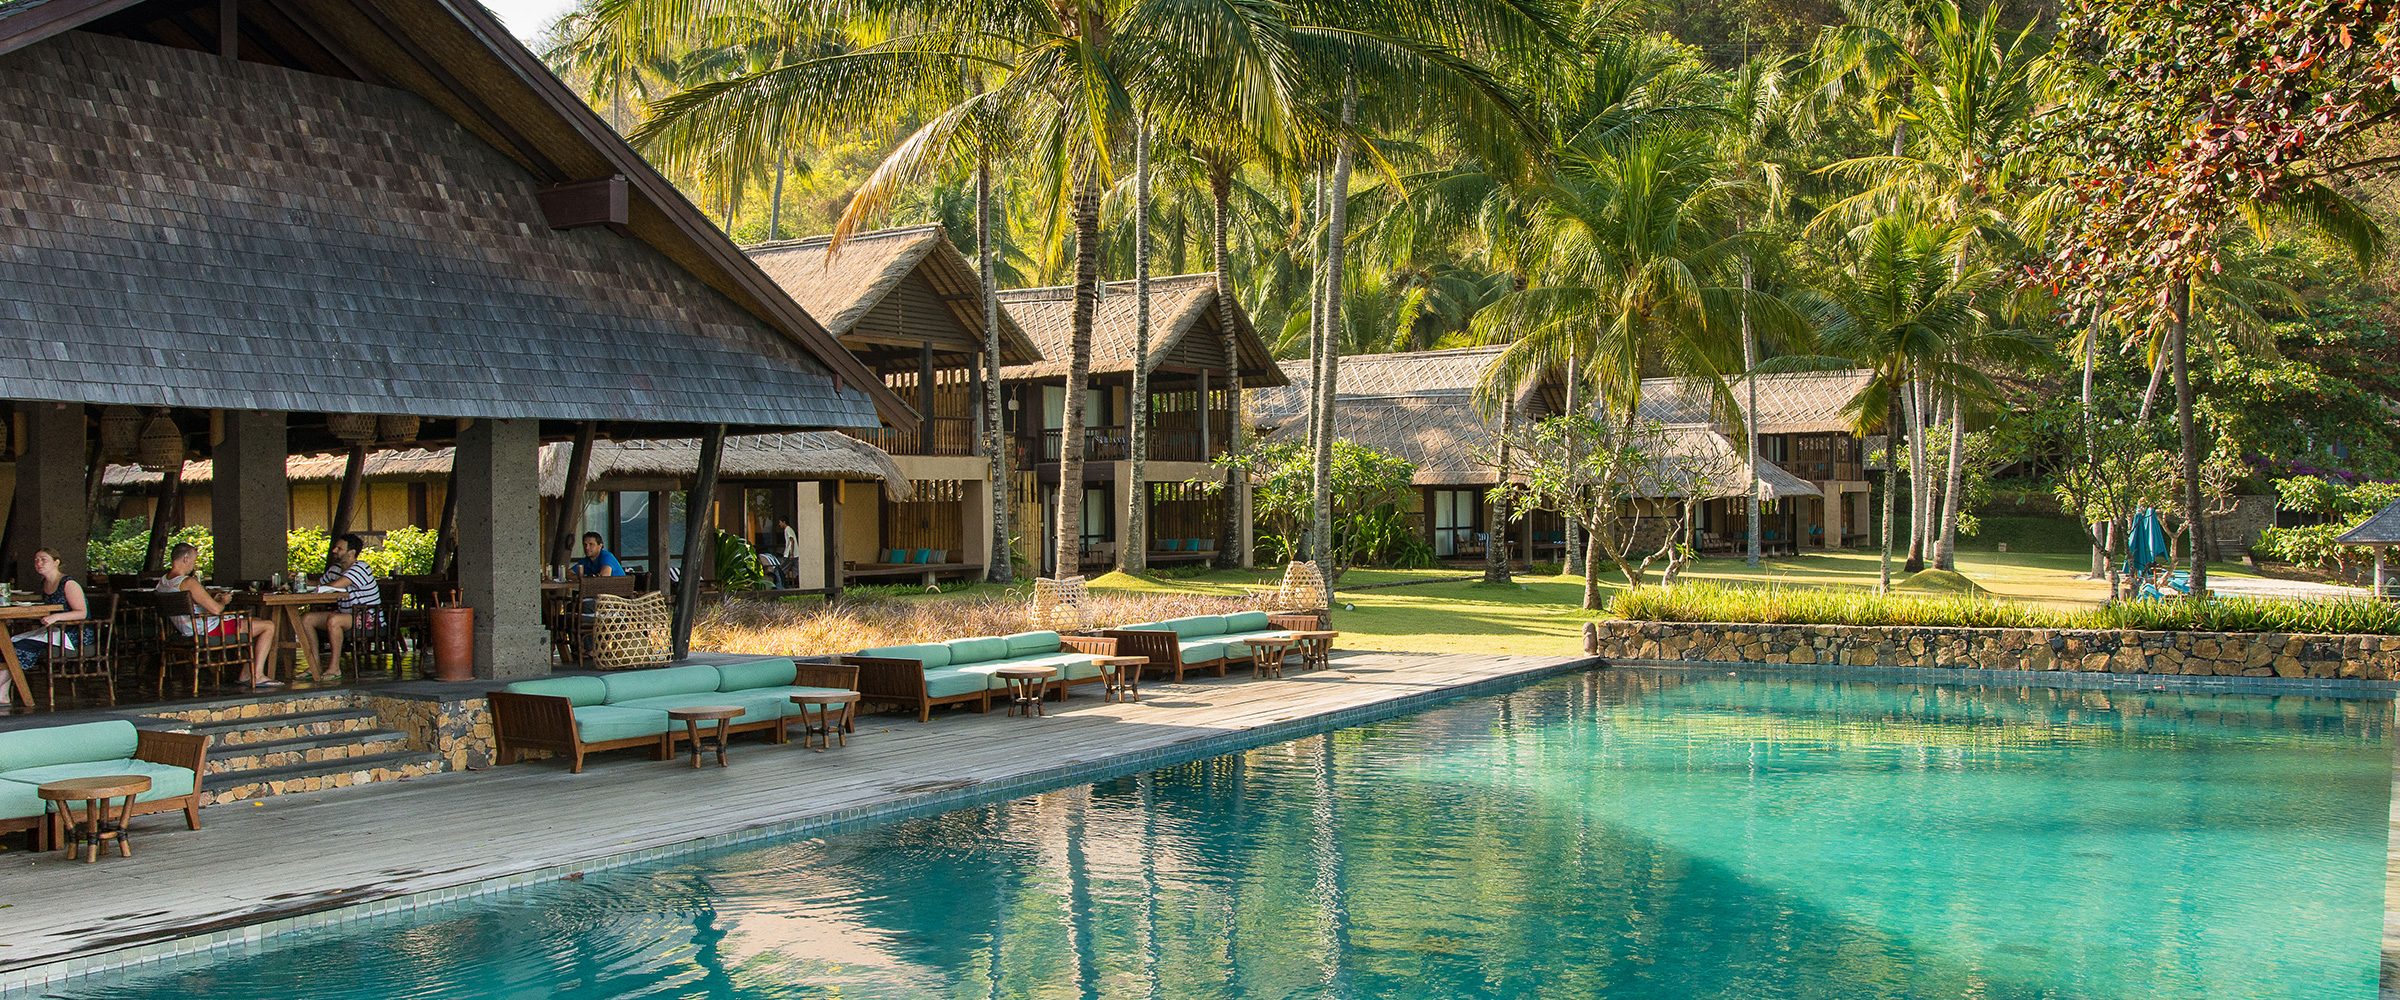 Jeeva resorts specials packages luxury romantic hotel for Luxury hotel packages